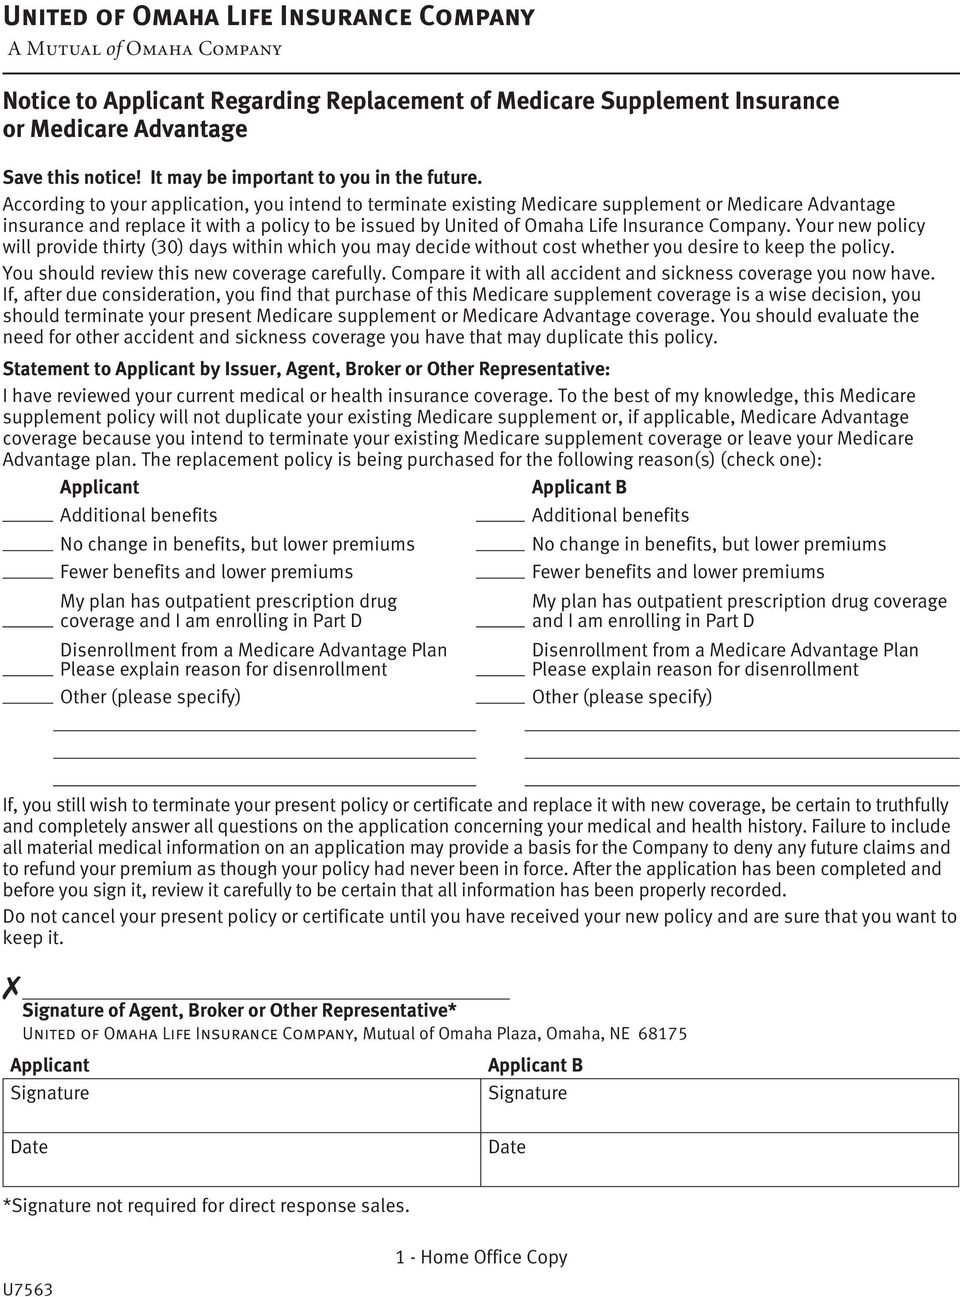 According to your application, you intend to terminate existing Medicare supplement or Medicare Advantage insurance and replace it with a policy to be issued by United of Omaha Life Insurance Company.